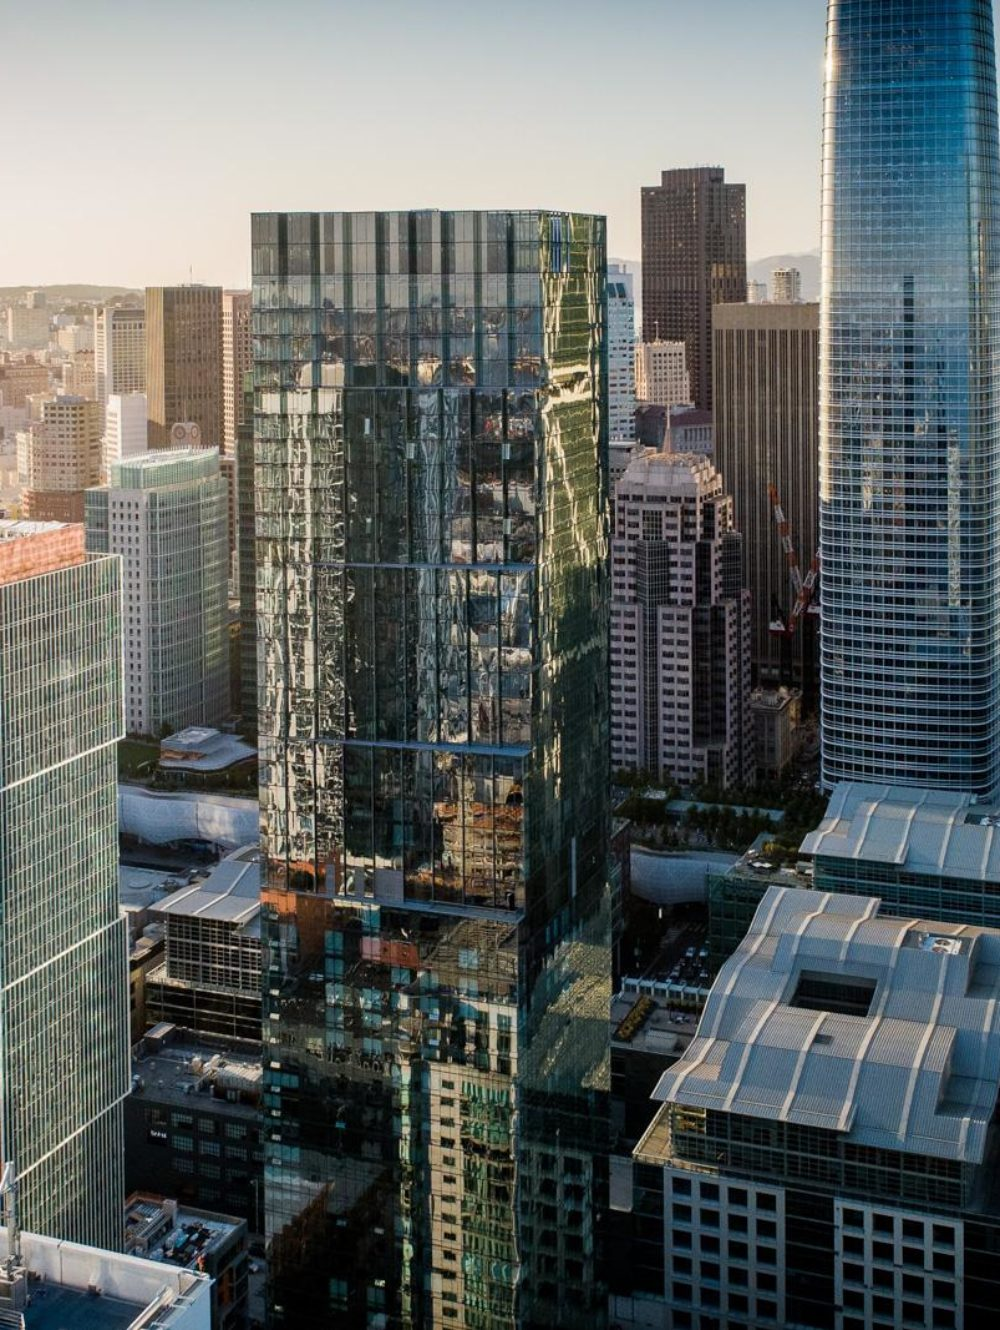 Aerial view of The Avery luxury condos in San Francisco. City skyline during sunset with The Avery glass tower in the center.